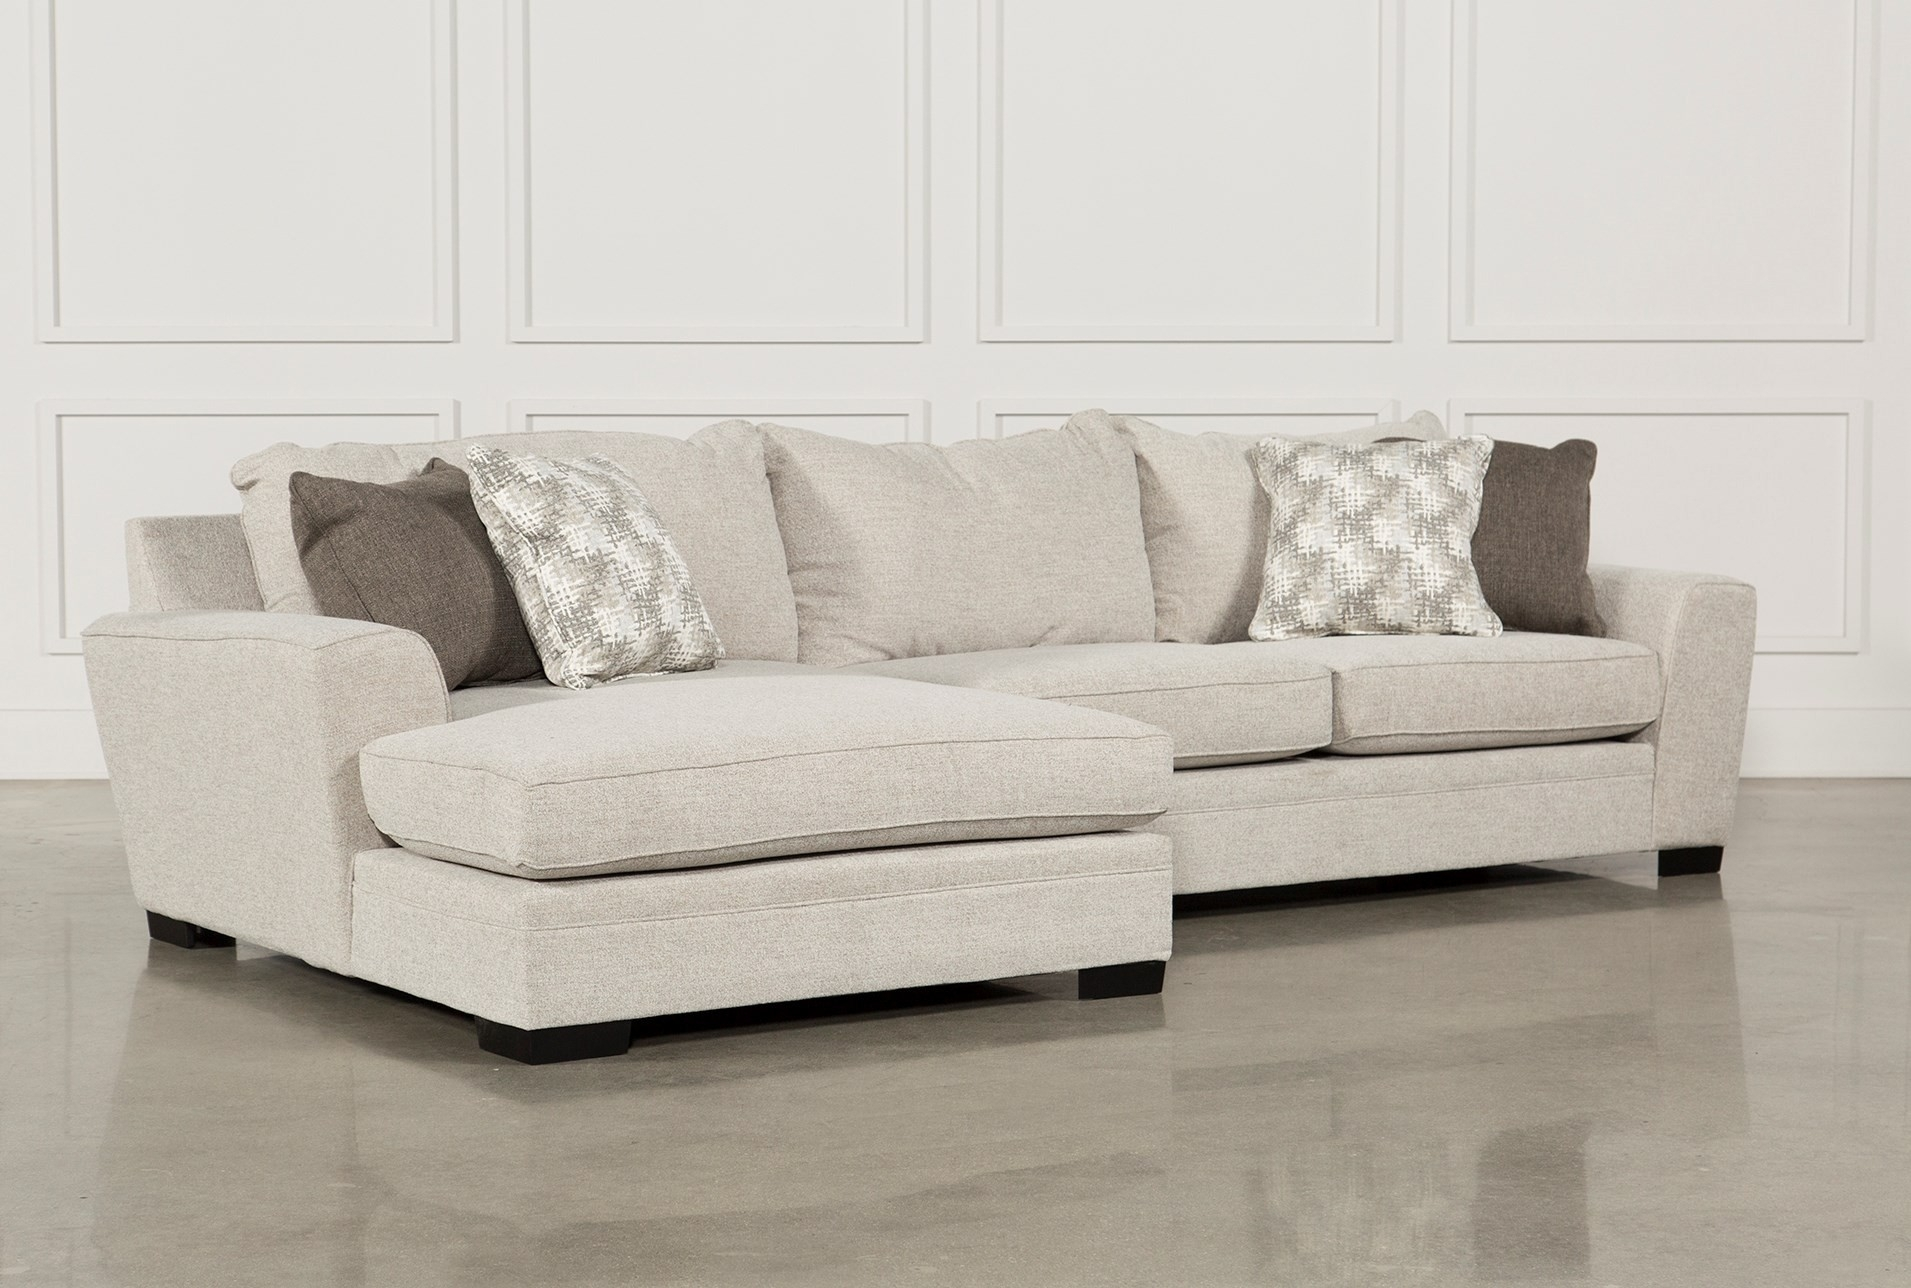 Living Spaces Sectional Couches Josephine 2 Piece W Raf Sofa 222882 pertaining to Josephine 2 Piece Sectionals With Laf Sofa (Image 16 of 30)